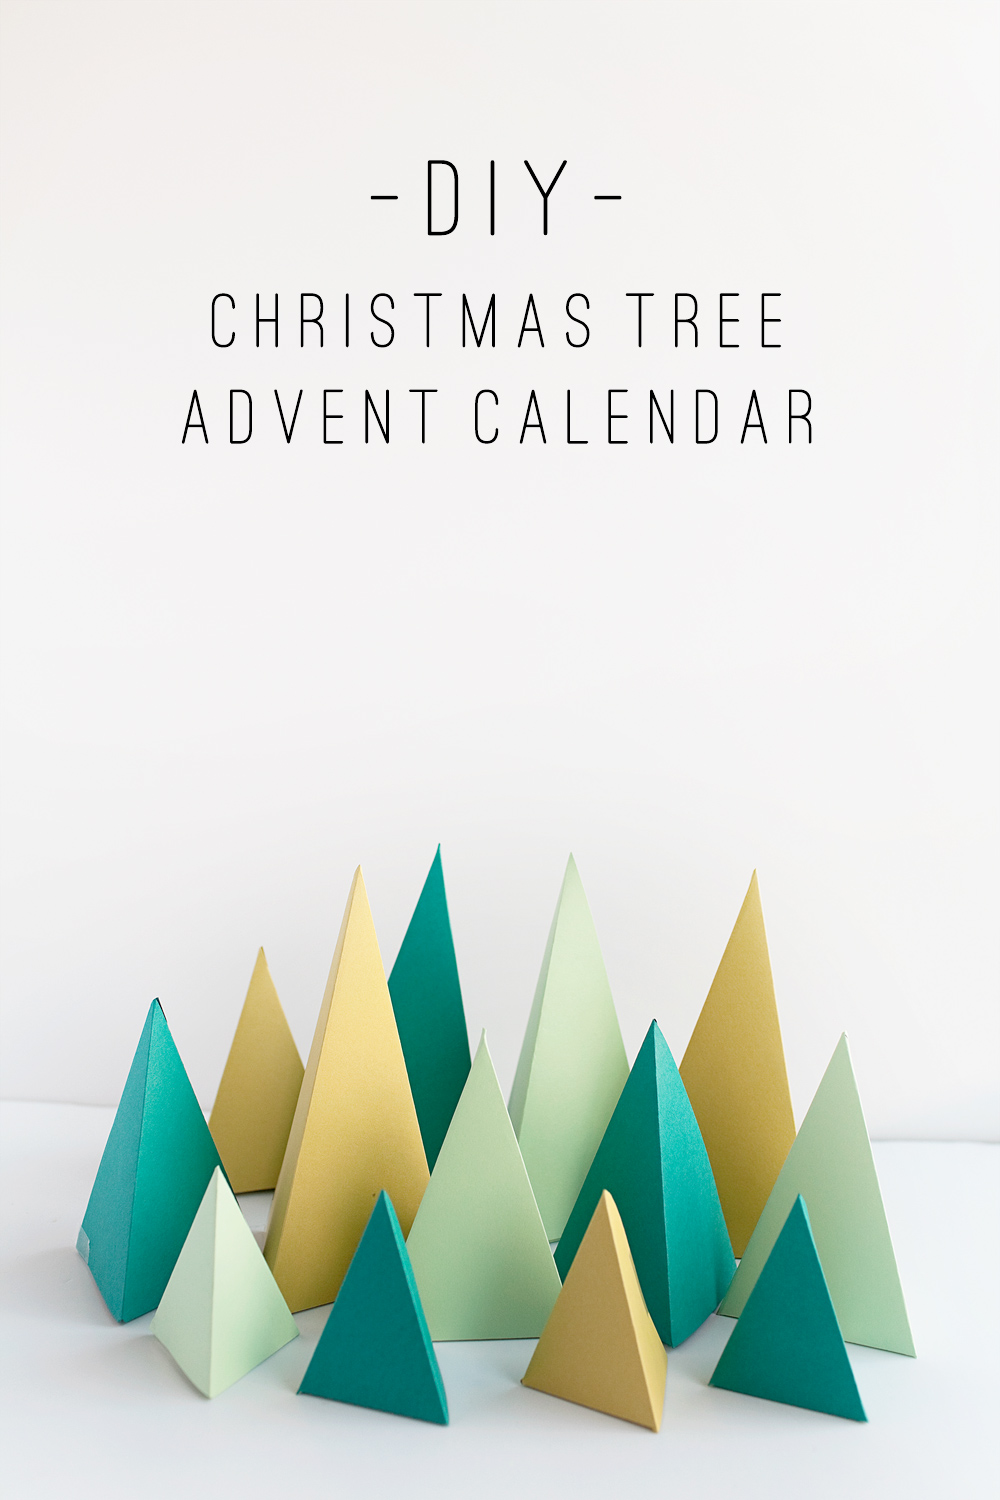 Diy Christian Advent Calendar : Tell diy christmas tree advent calendar love and party